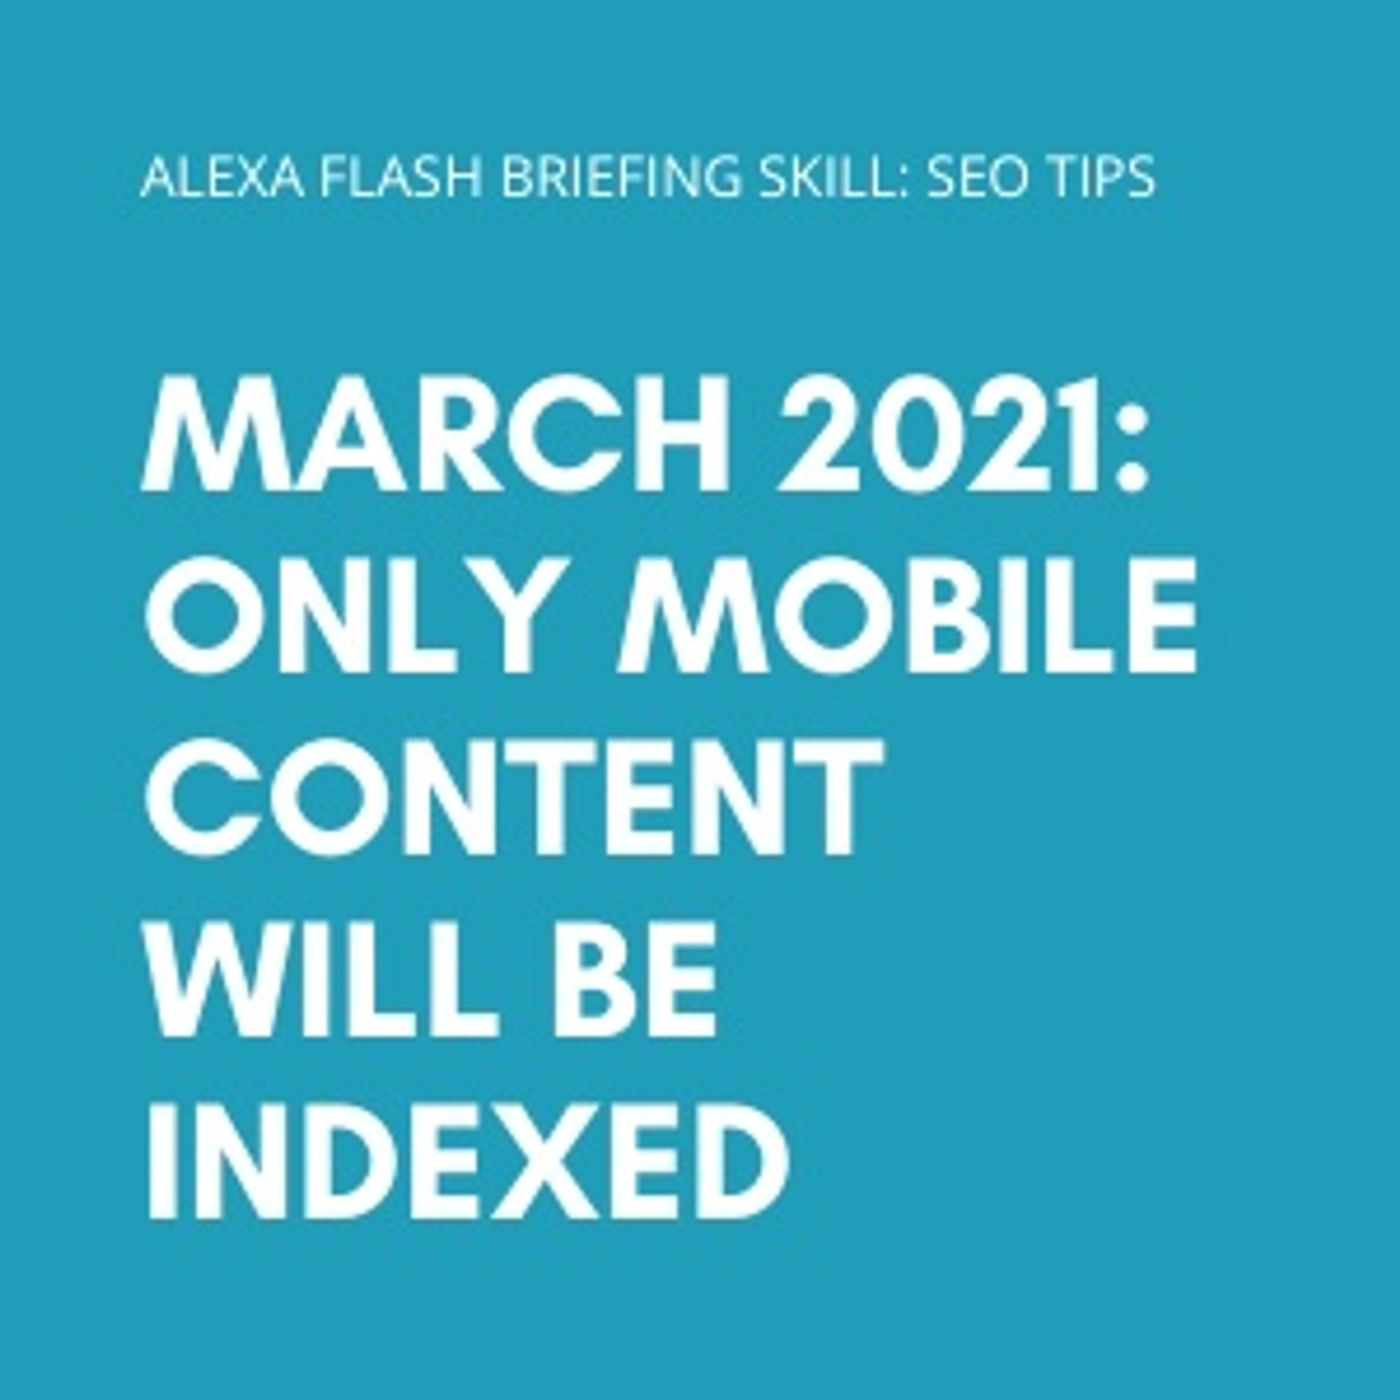 March 2021: Only mobile content will be indexed